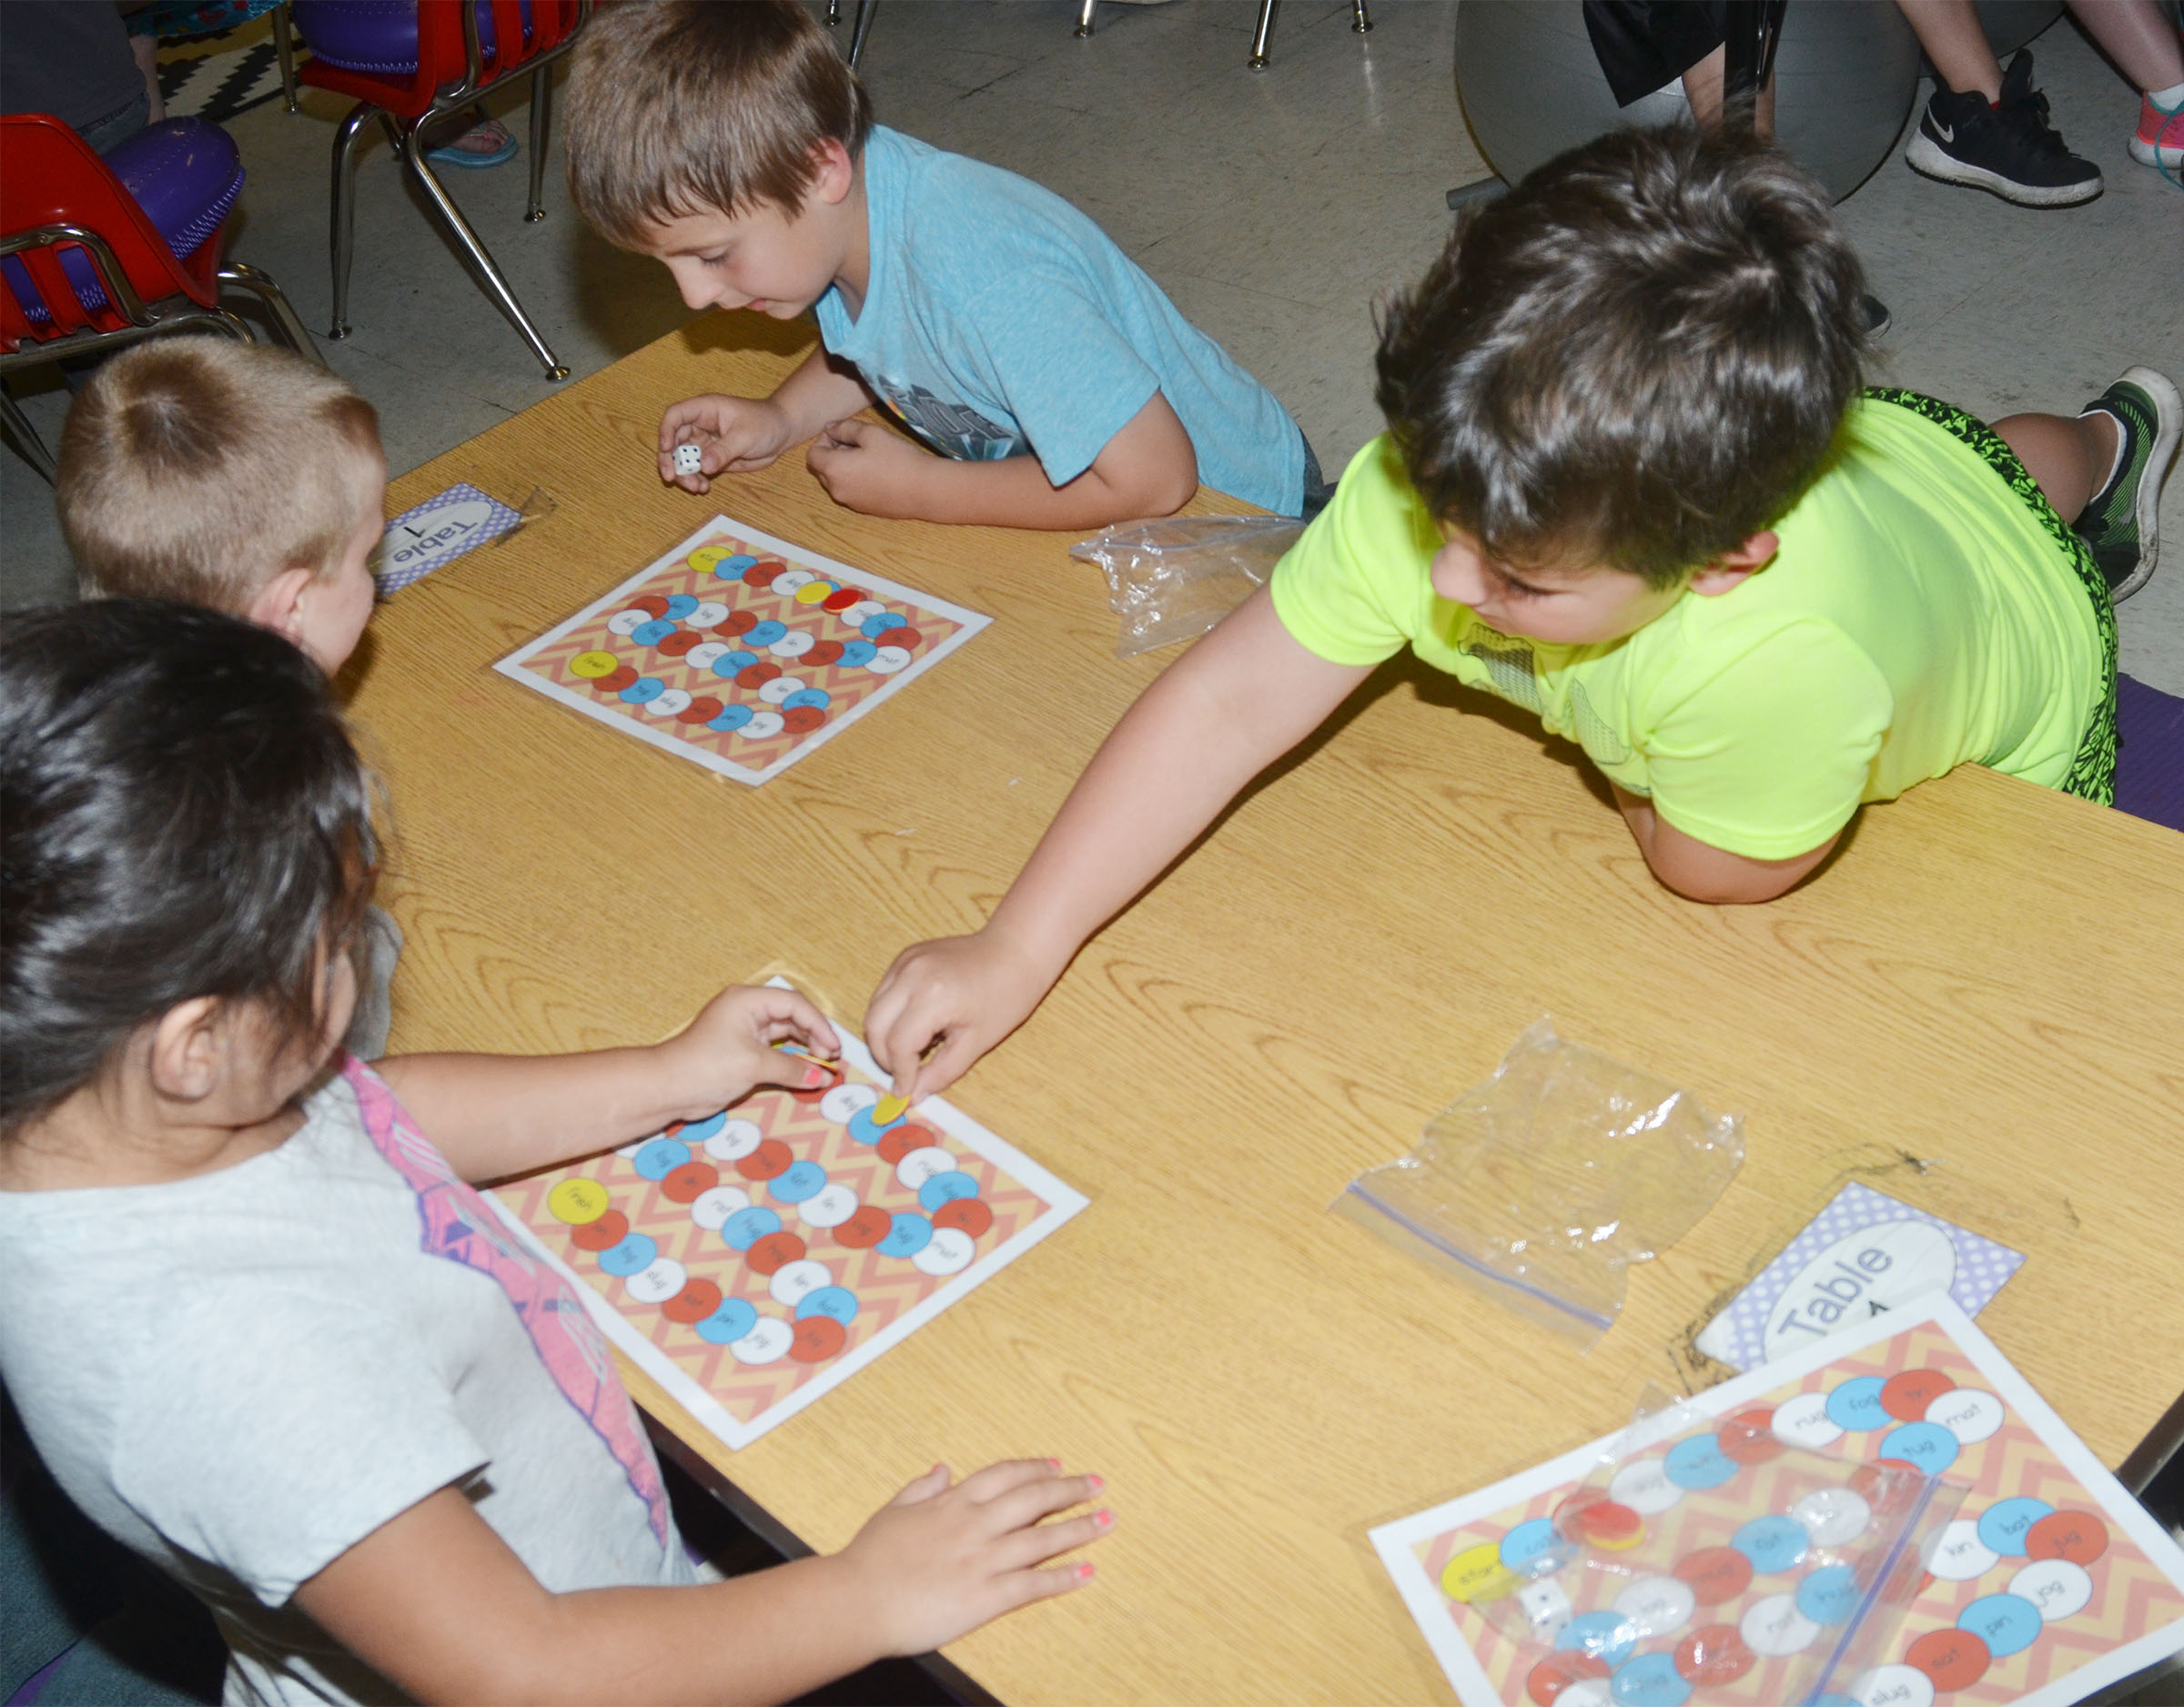 CES kindergartener Casen Meredith plays a sight word game with his friends.